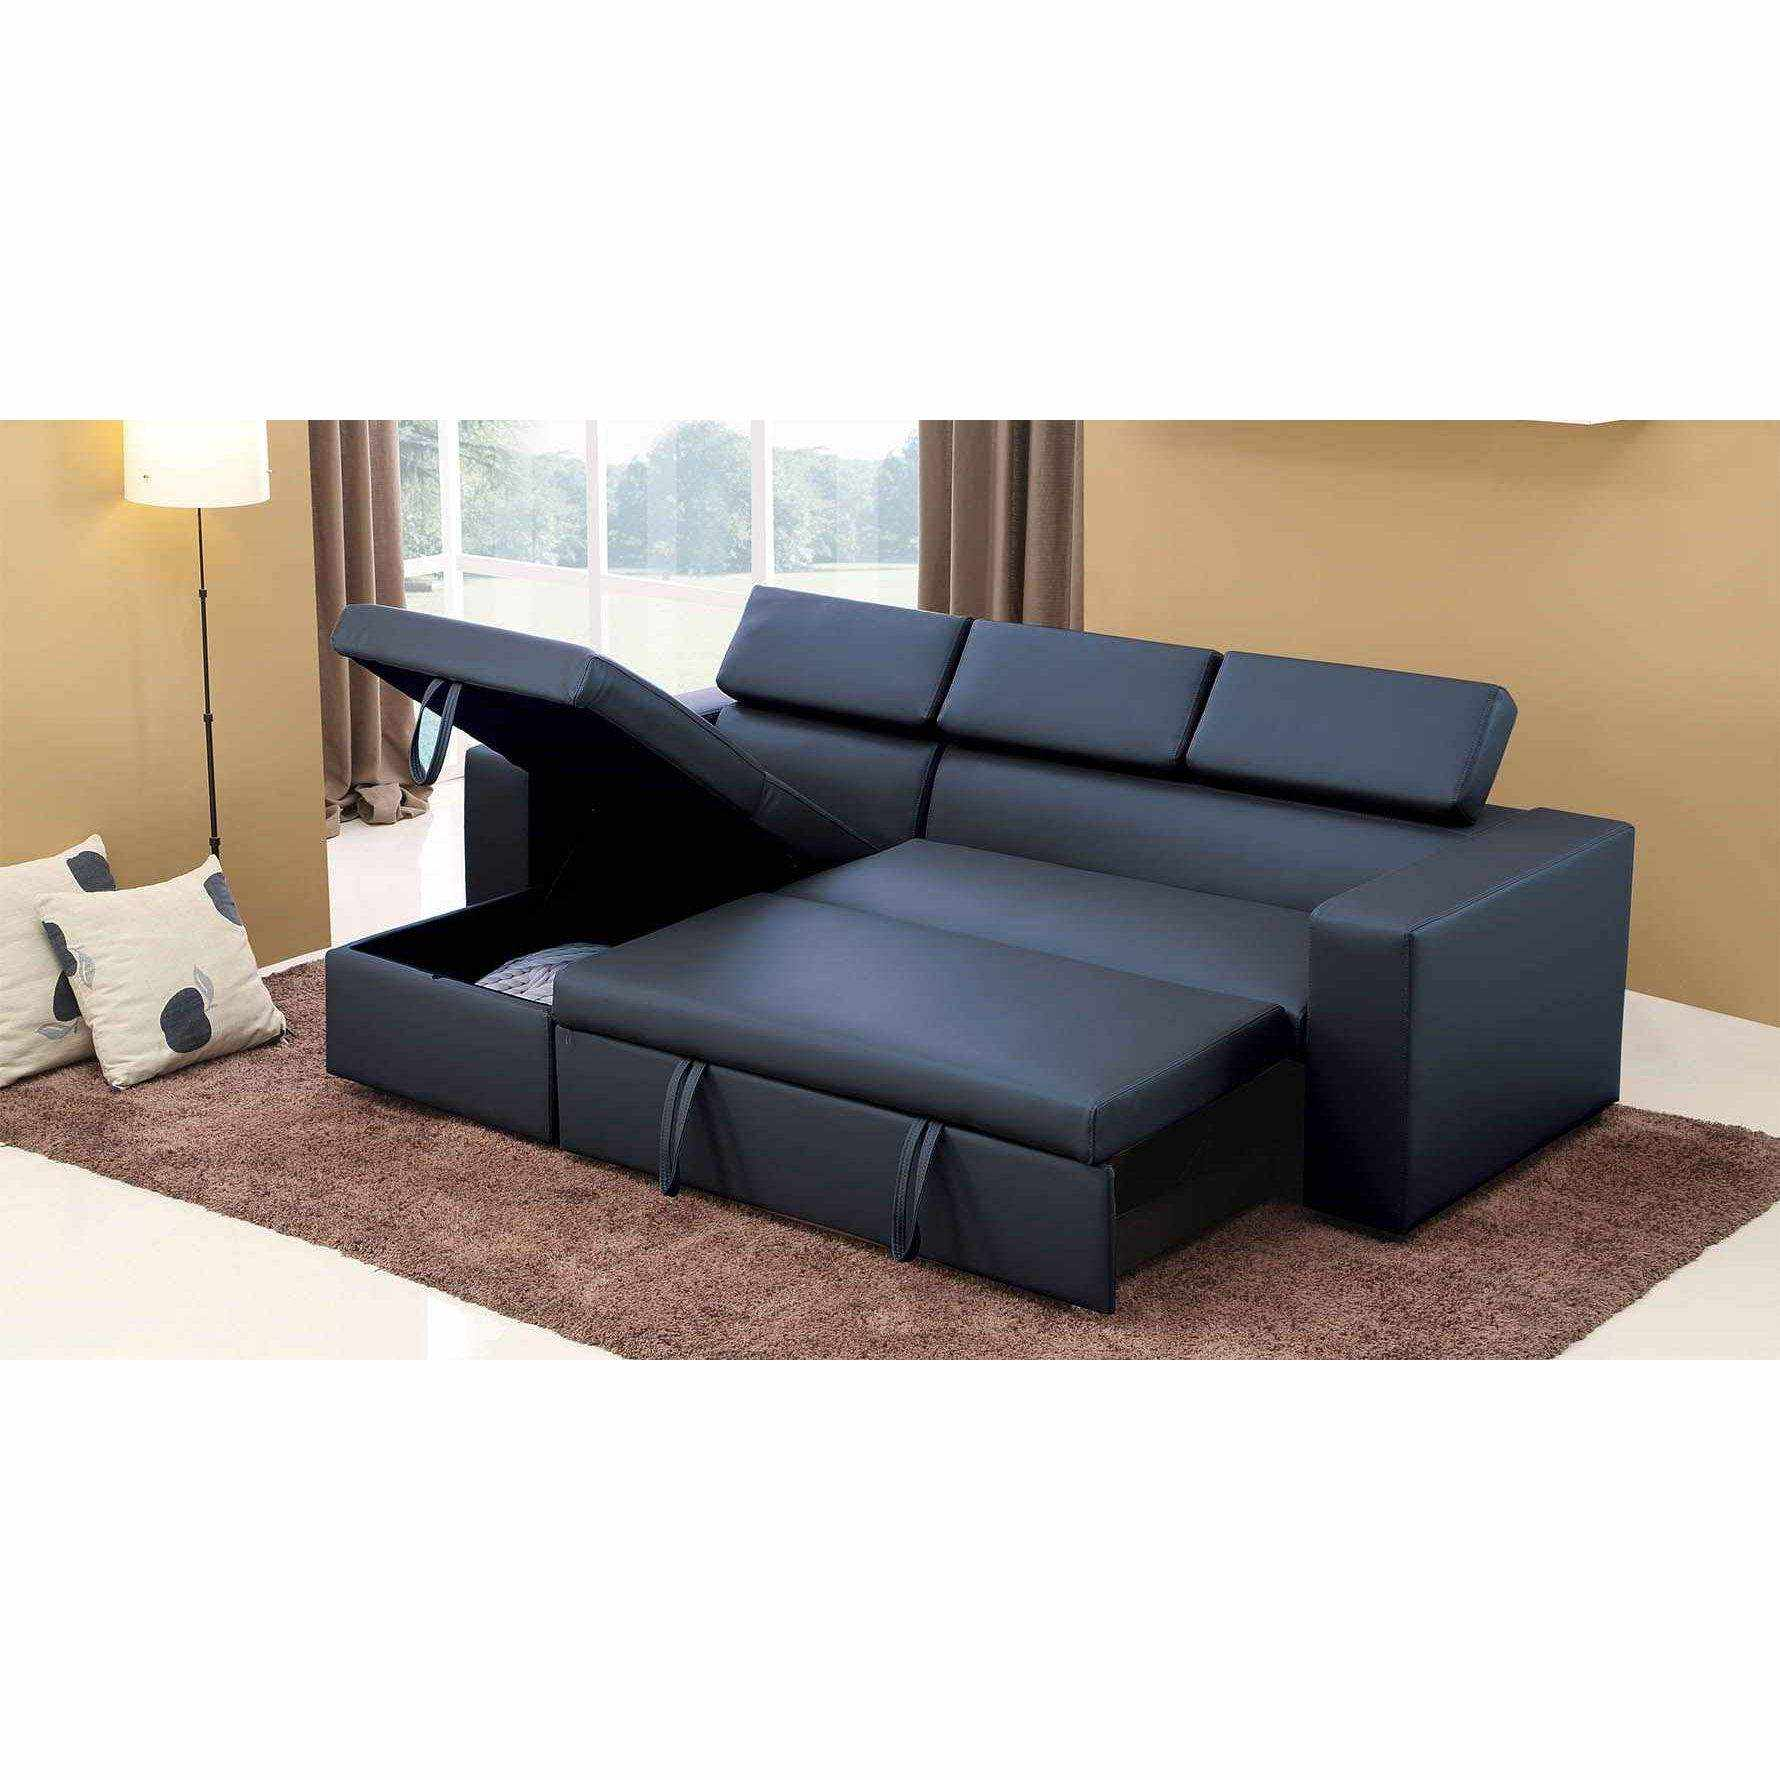 Deco in paris canape d angle convertible modulable noir for Canape modulable solde